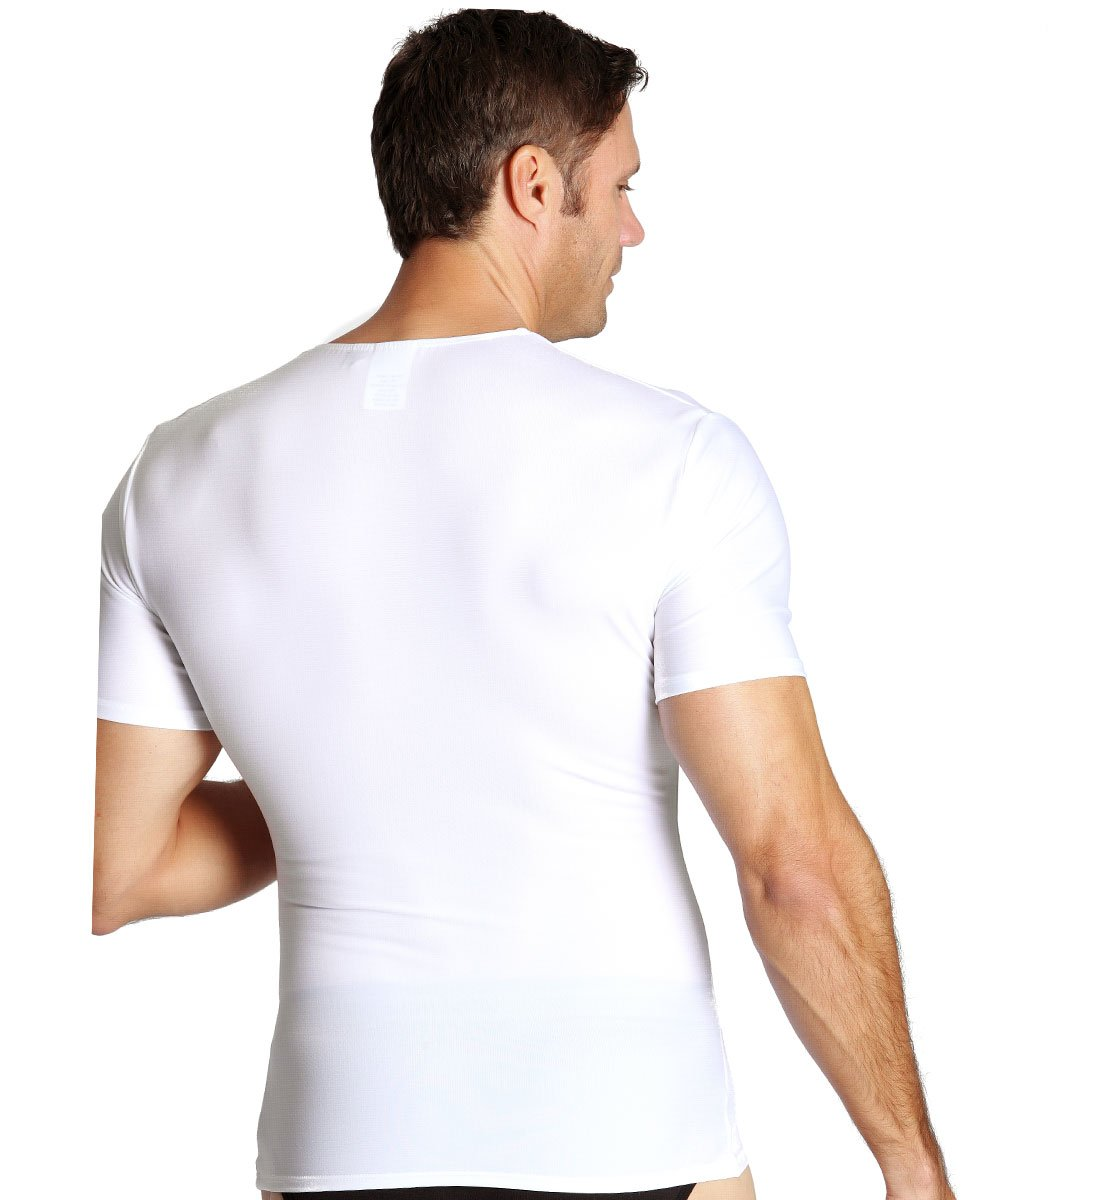 Insta Slim Men's Compression Crew-Neck T-Shirt (Large, White), The Magic Is In The Fabric! by Insta Slim (Image #4)